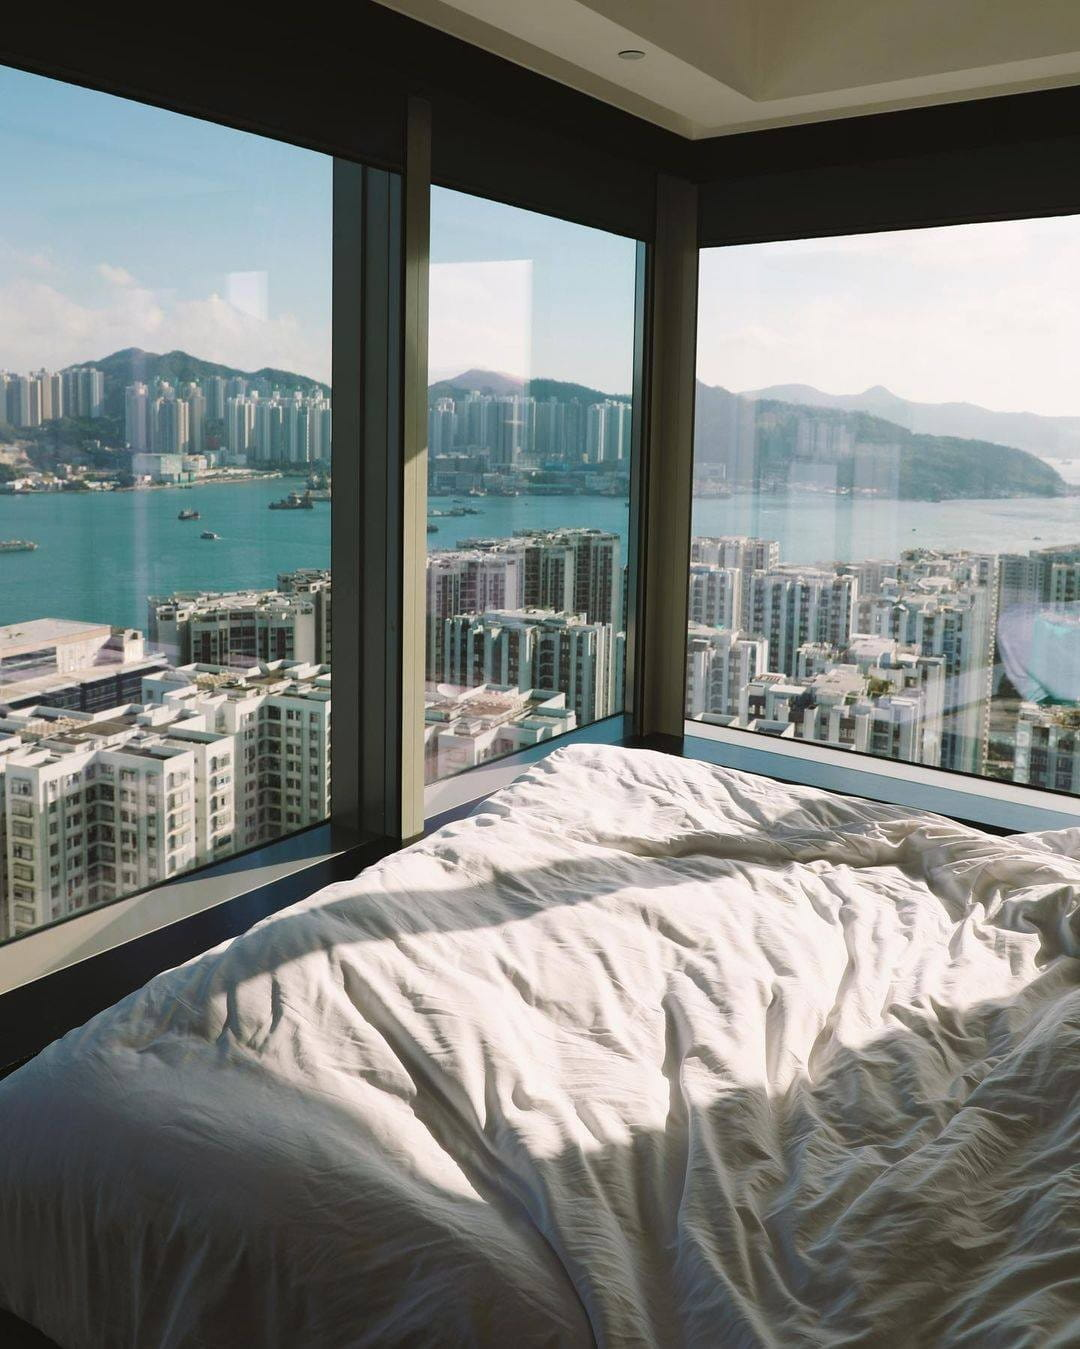 Craving for waking up to a harbour view?   This could be you too! Our 'Stay Above The Clouds' flash sale is back with even more attractive perks today, visit the link in bio for more details.   #atEAST #StayatEAST #EATatEAST #EASTHongKong  📷: @sebastiendoze